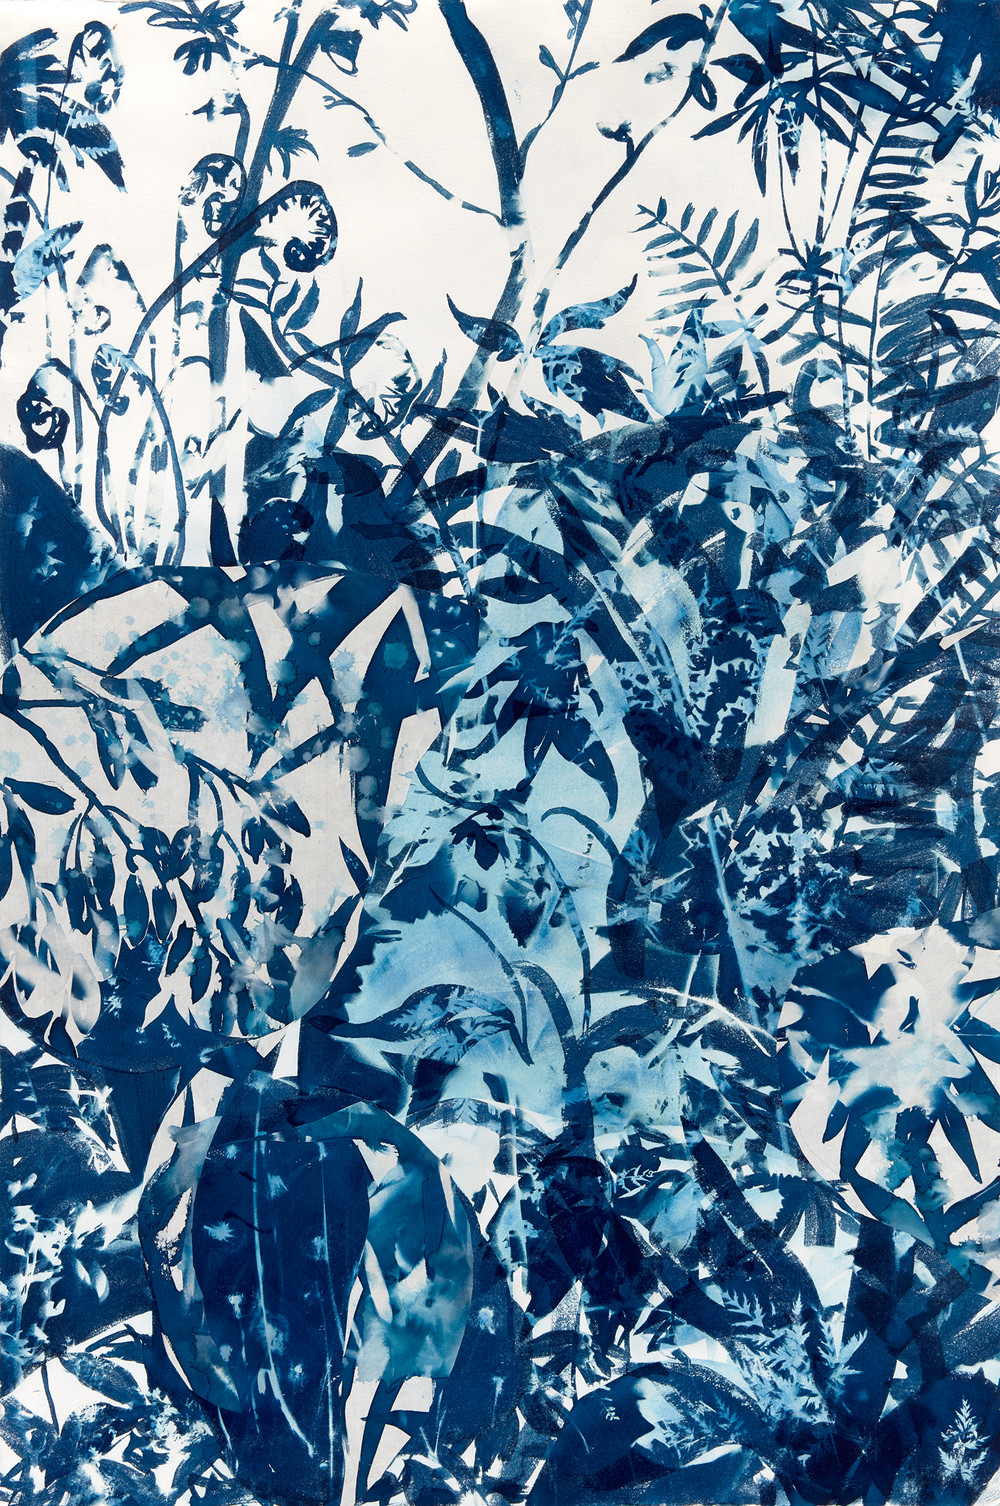 Cynthia MacCollum Botanica Cyanotype Painting double exposure with collage